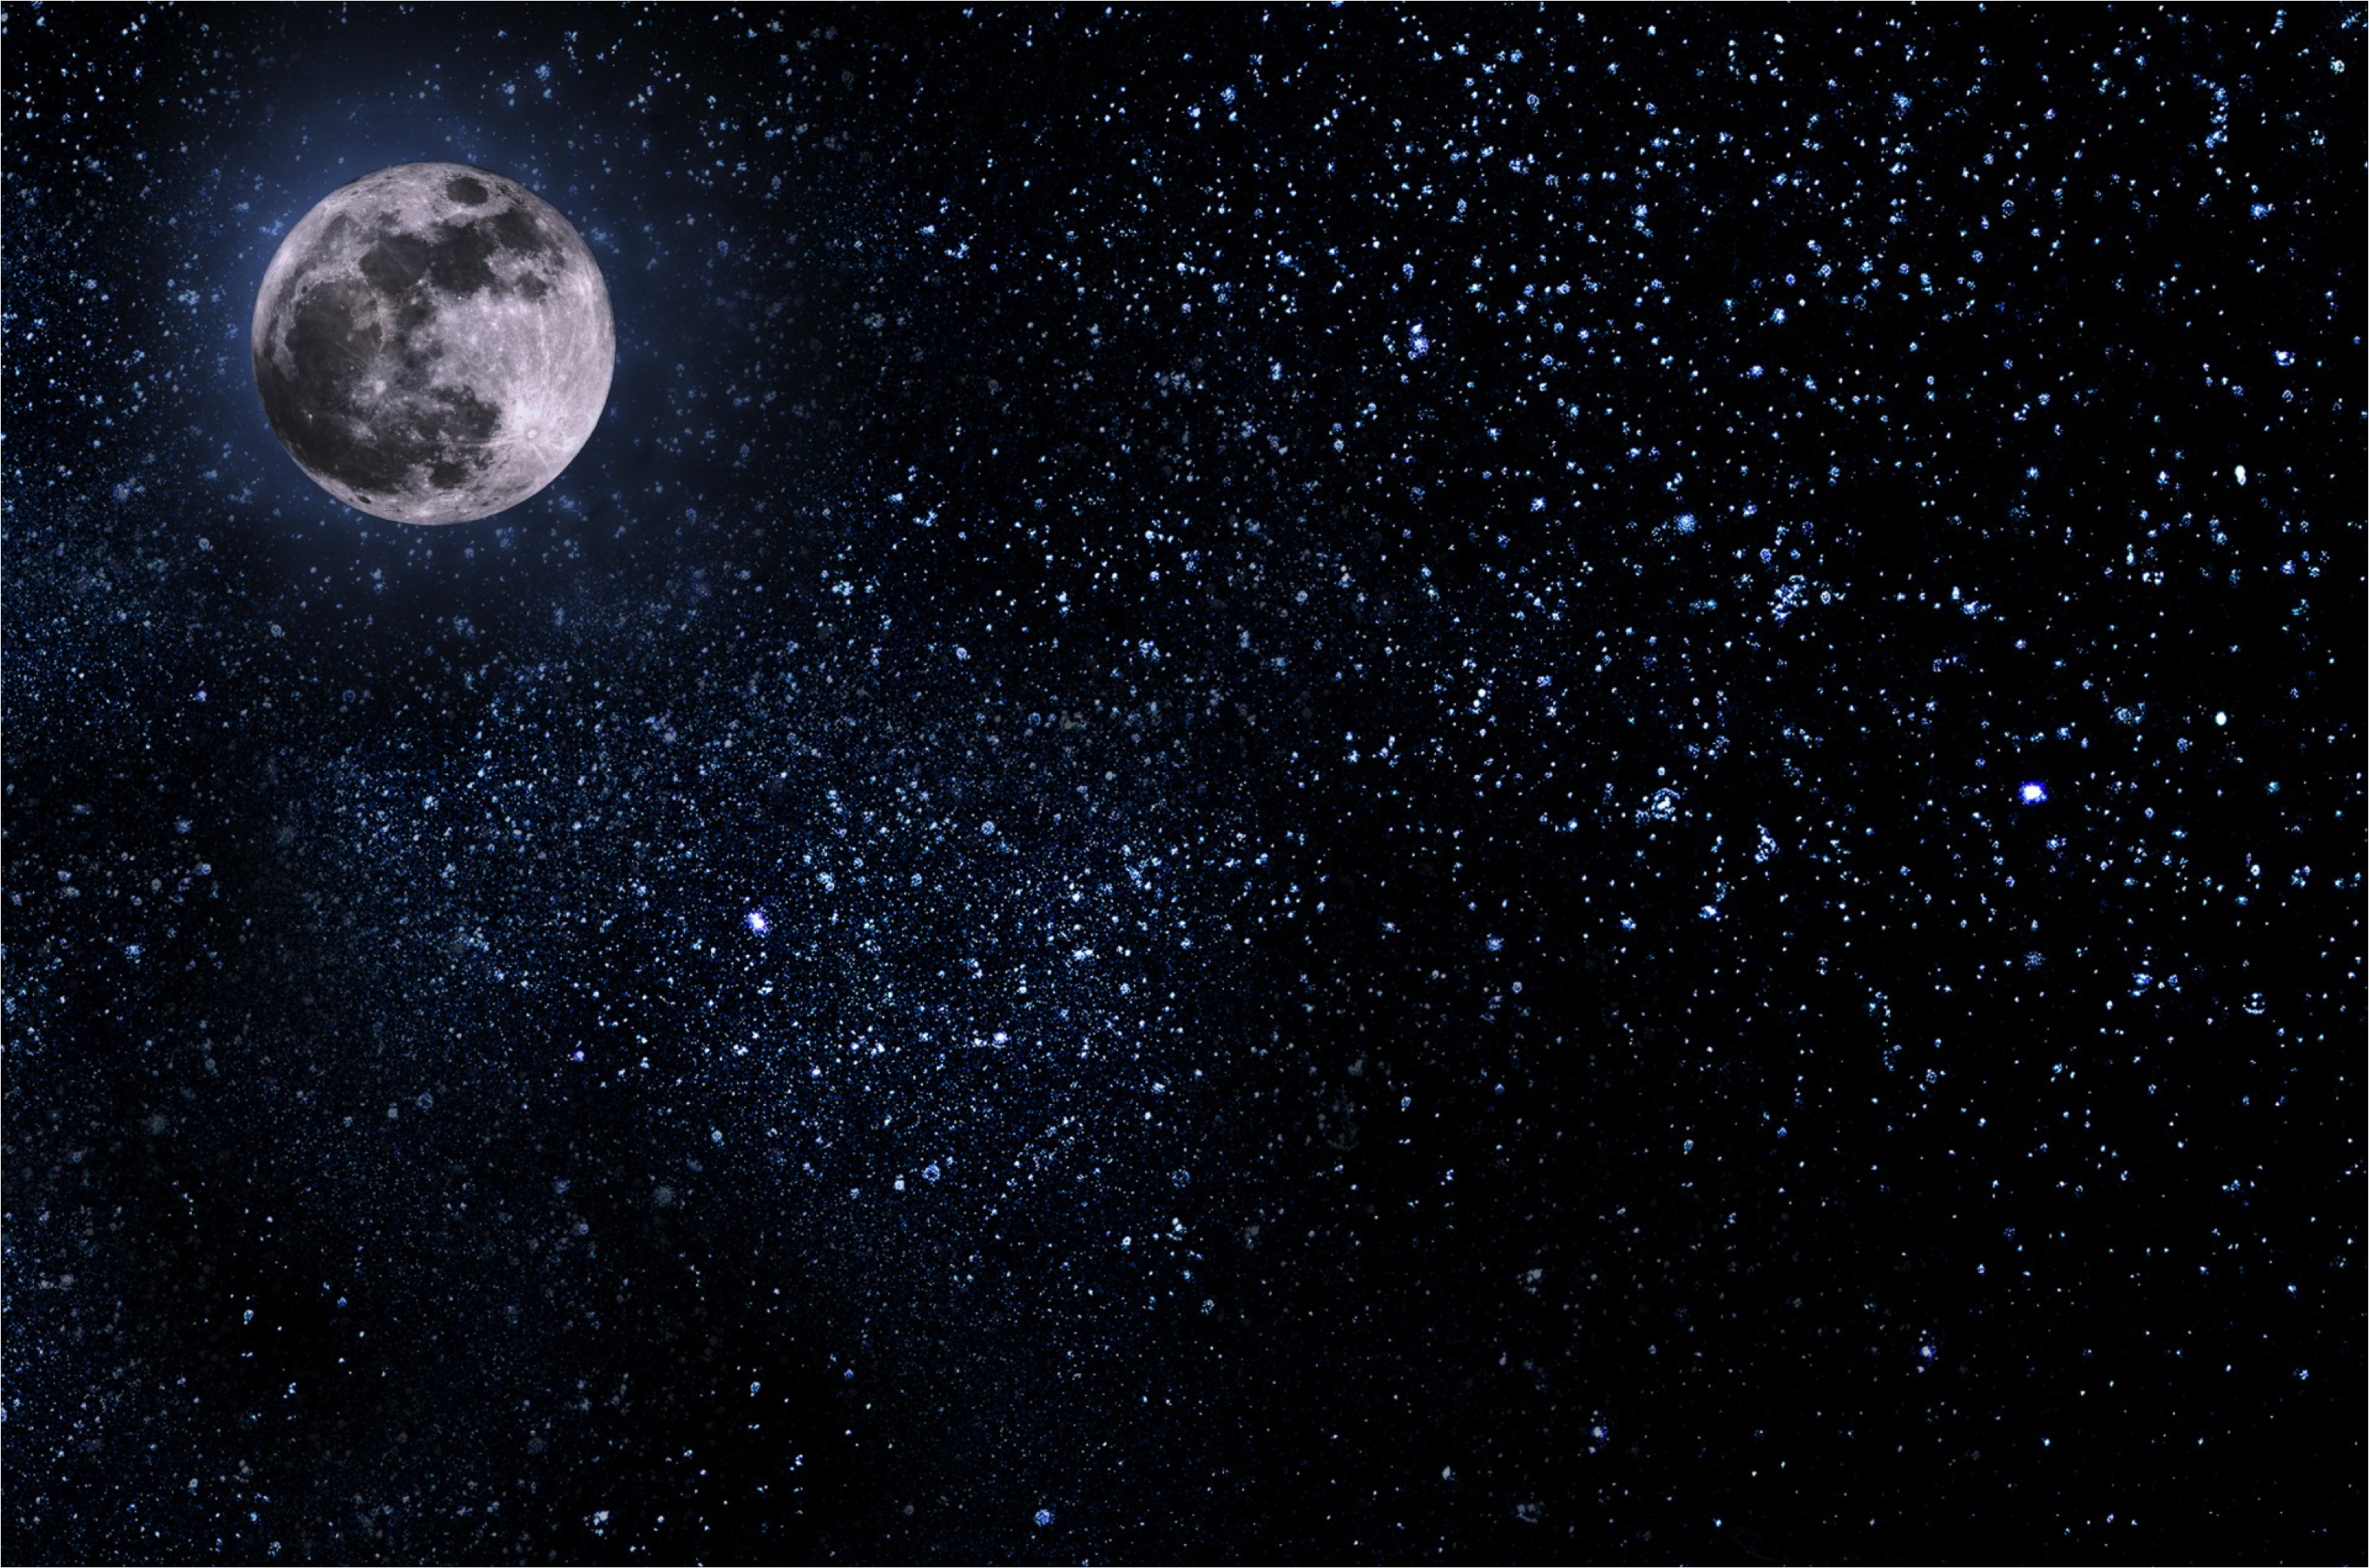 A picture of the moon in a starry sky.